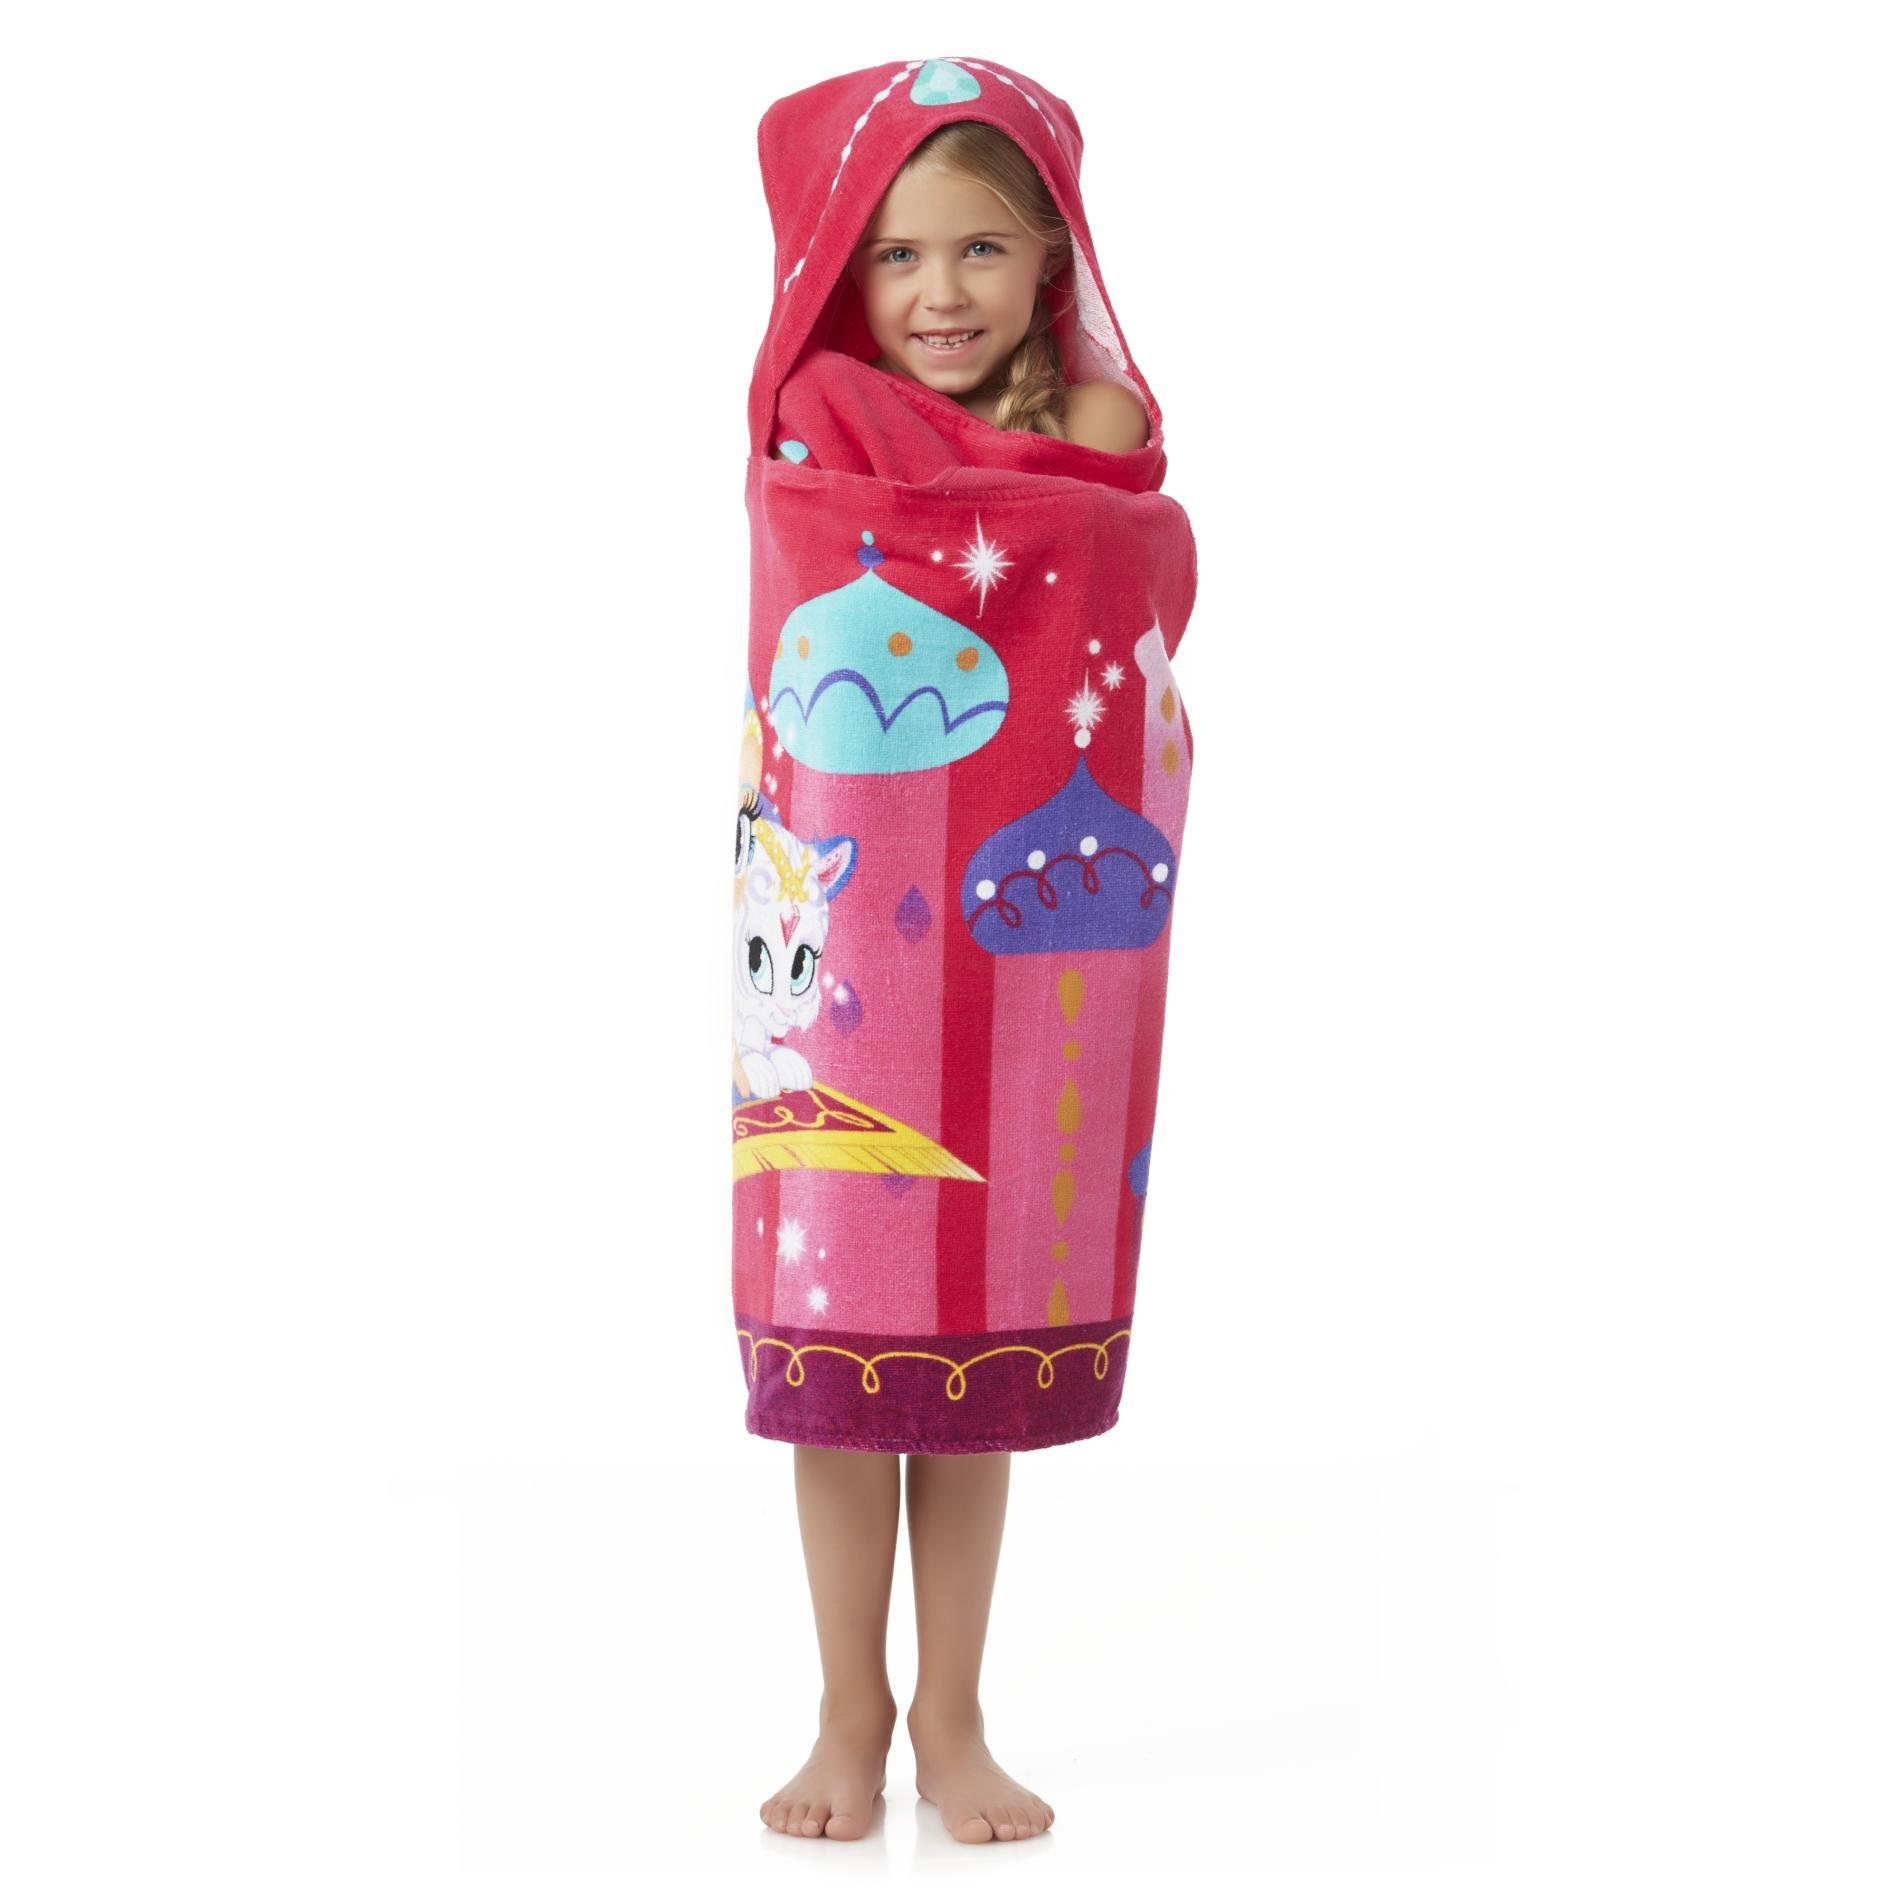 Shimmer and Shine Hooded Towel Wrap for Bath, Pool and Beach